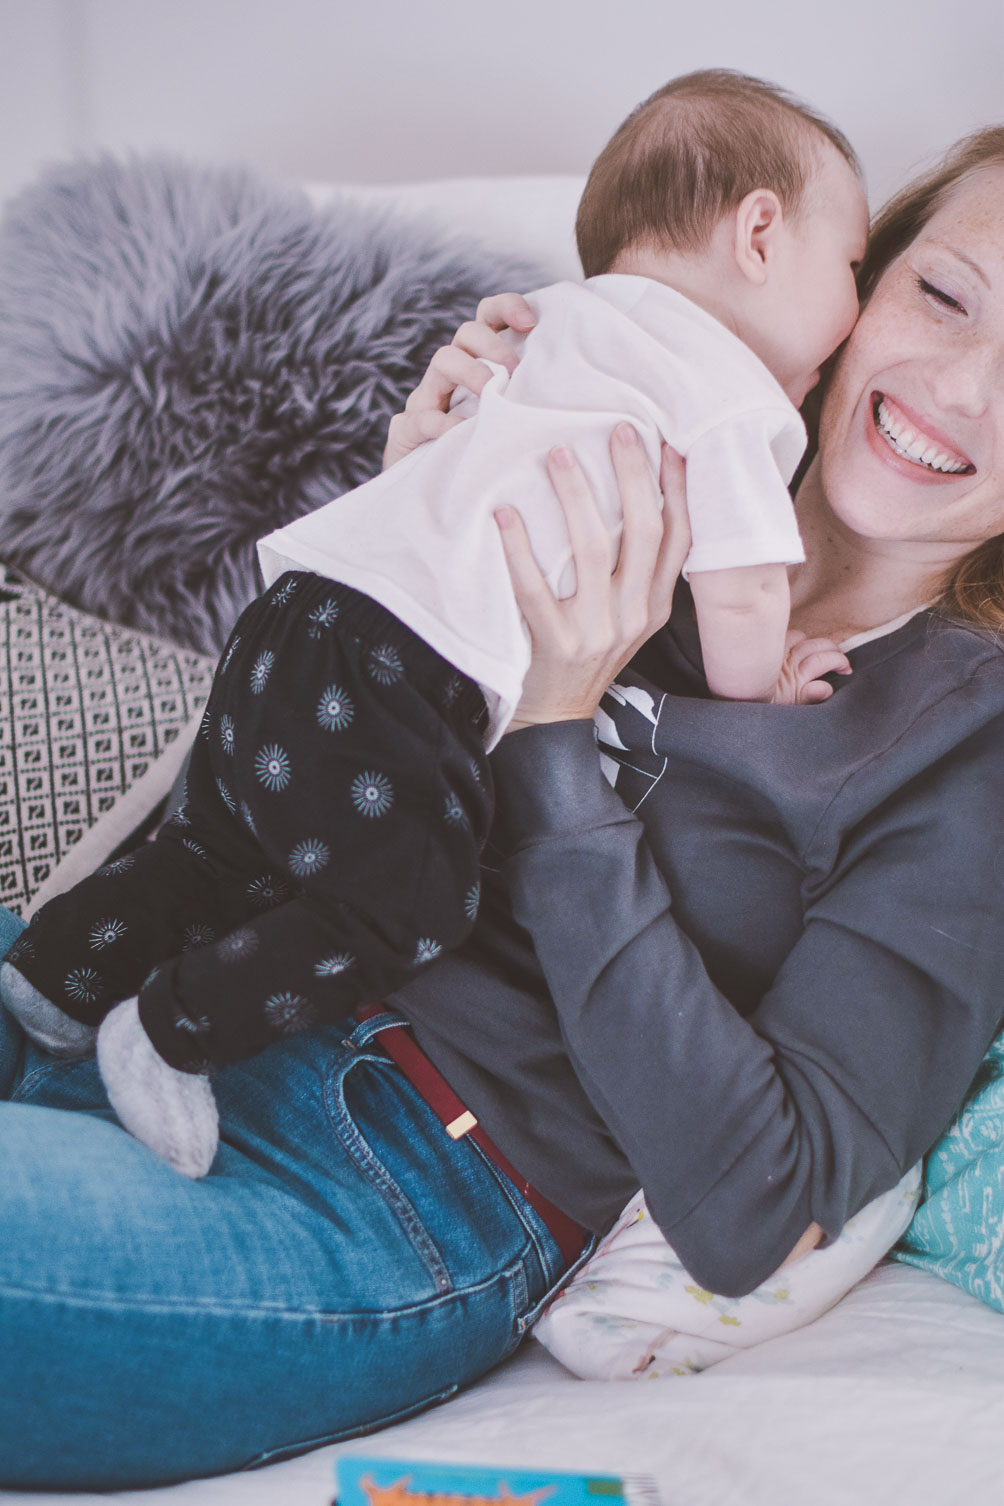 mom and baby boy photo in ethical sustainable clothing brand Color Cloud Mill